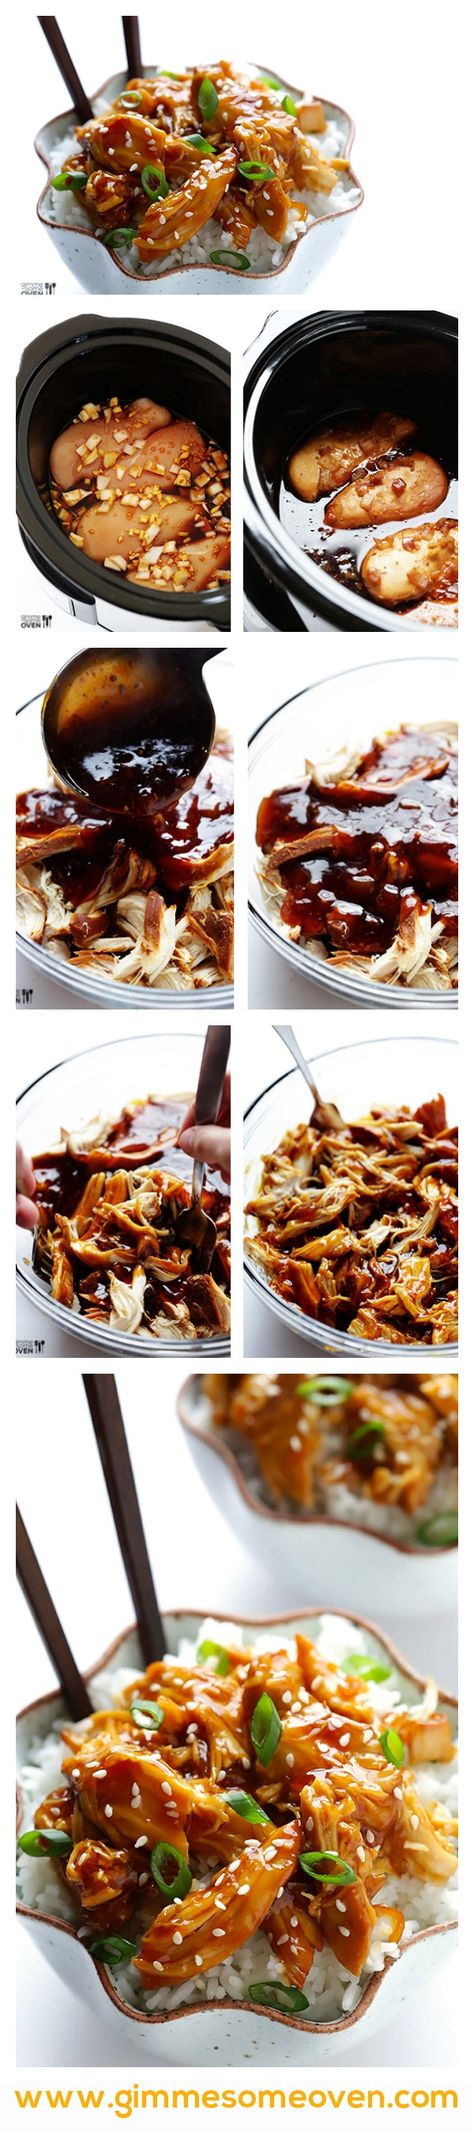 Slow Cooker Teriyaki Chicken -- super easy to make, and naturally sweetened with honey instead of sugar | gimmesomeoven.com #chicken #crockpot #slowcooker